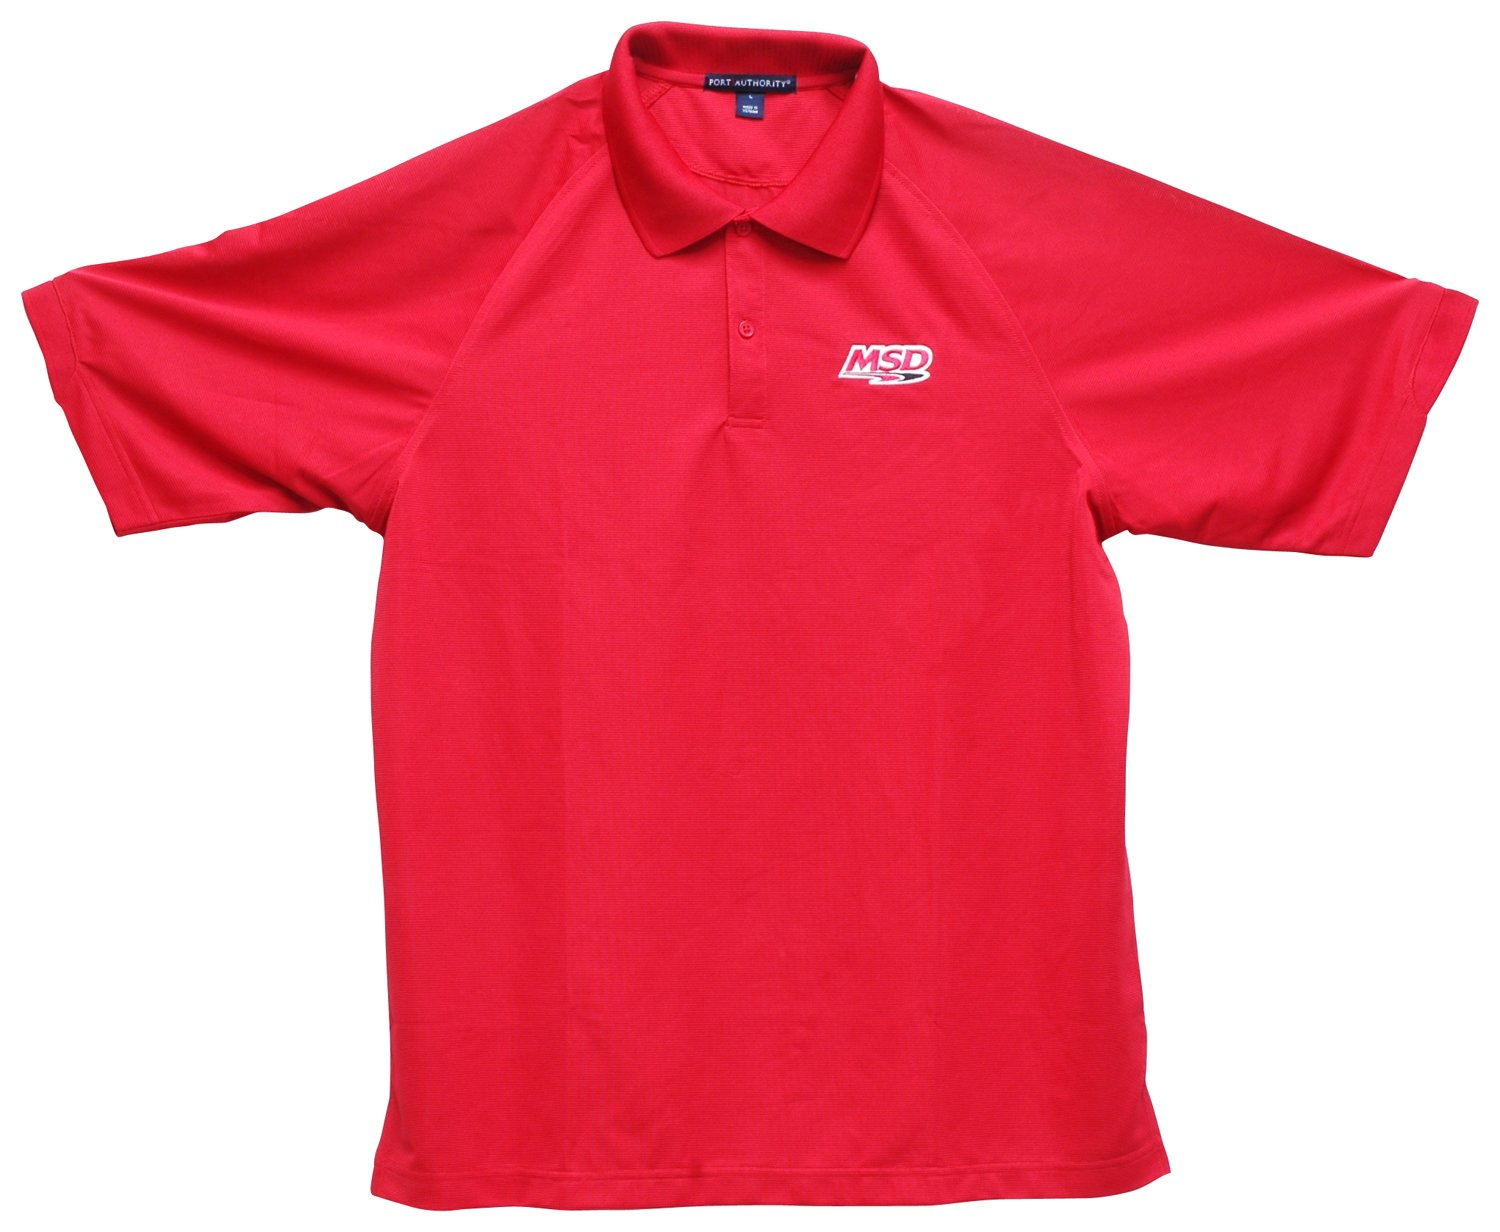 95121 - MSD Polo Shirt, Red, Large Image